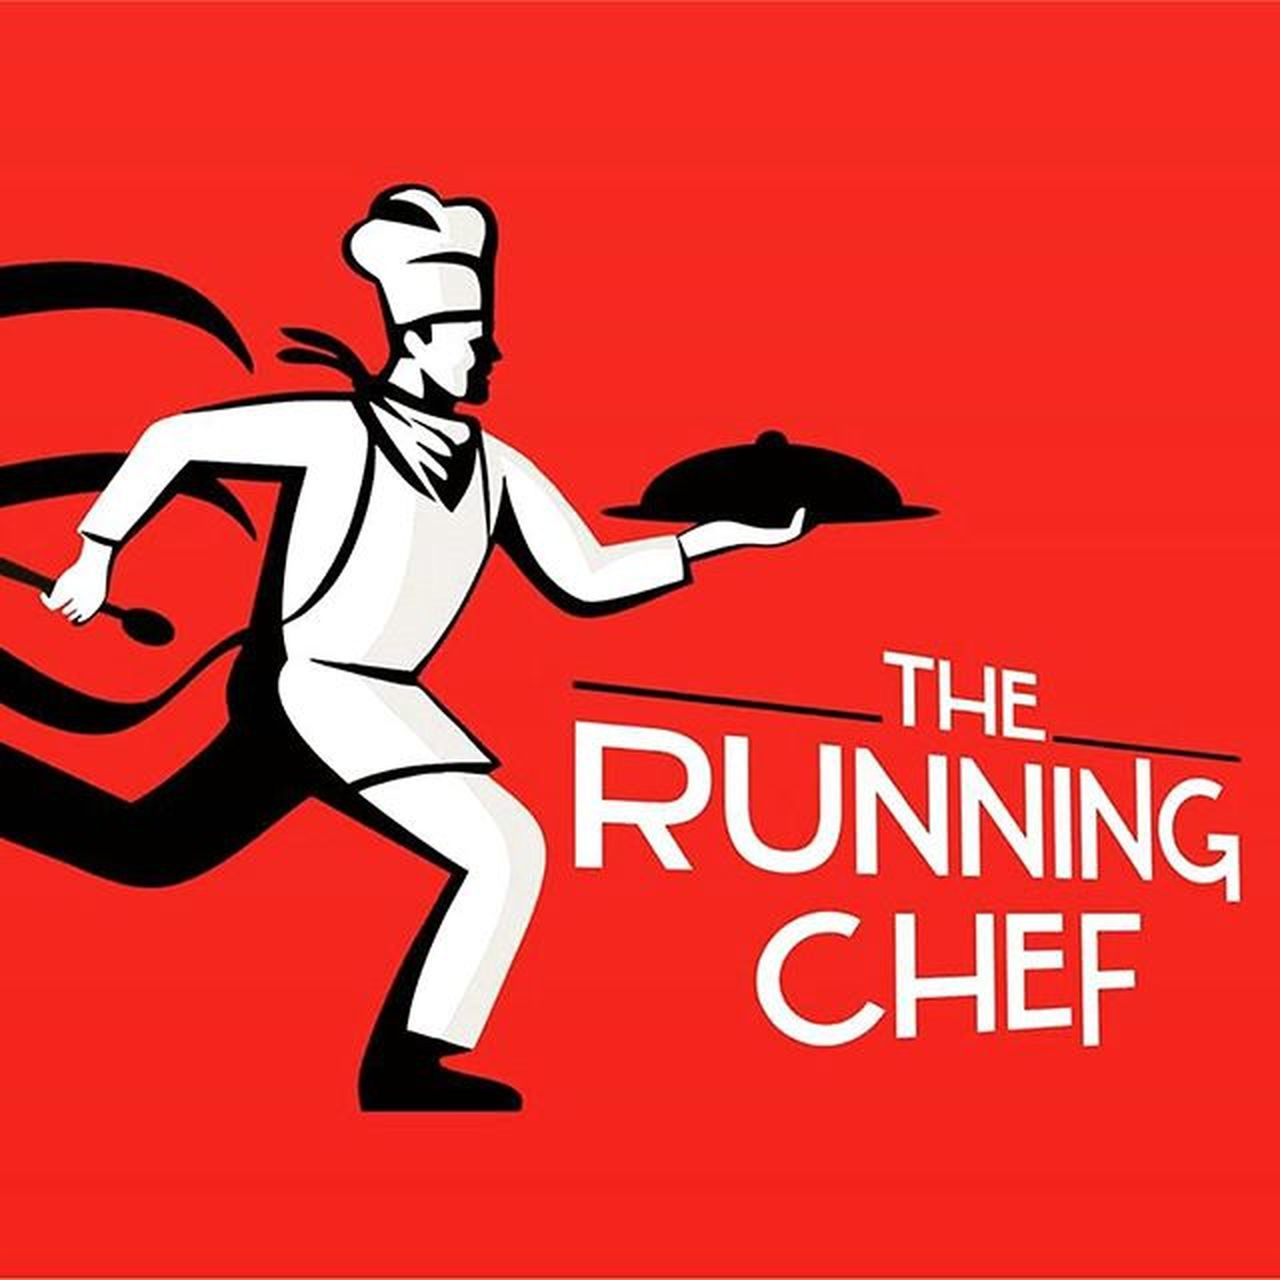 I'm just not an OCR racer, I'm also a small business owner. The Running Chef Catering LLC in BUFFALO, NY For all your catering needs you can find us on facebook and our website wwe.run-chef.com. Ocr Ocrunited Buffalo Buffalony Catering Caterer Buffalocatering Buffalocaterer Wedding Birthdays Parties Anniversary Showers